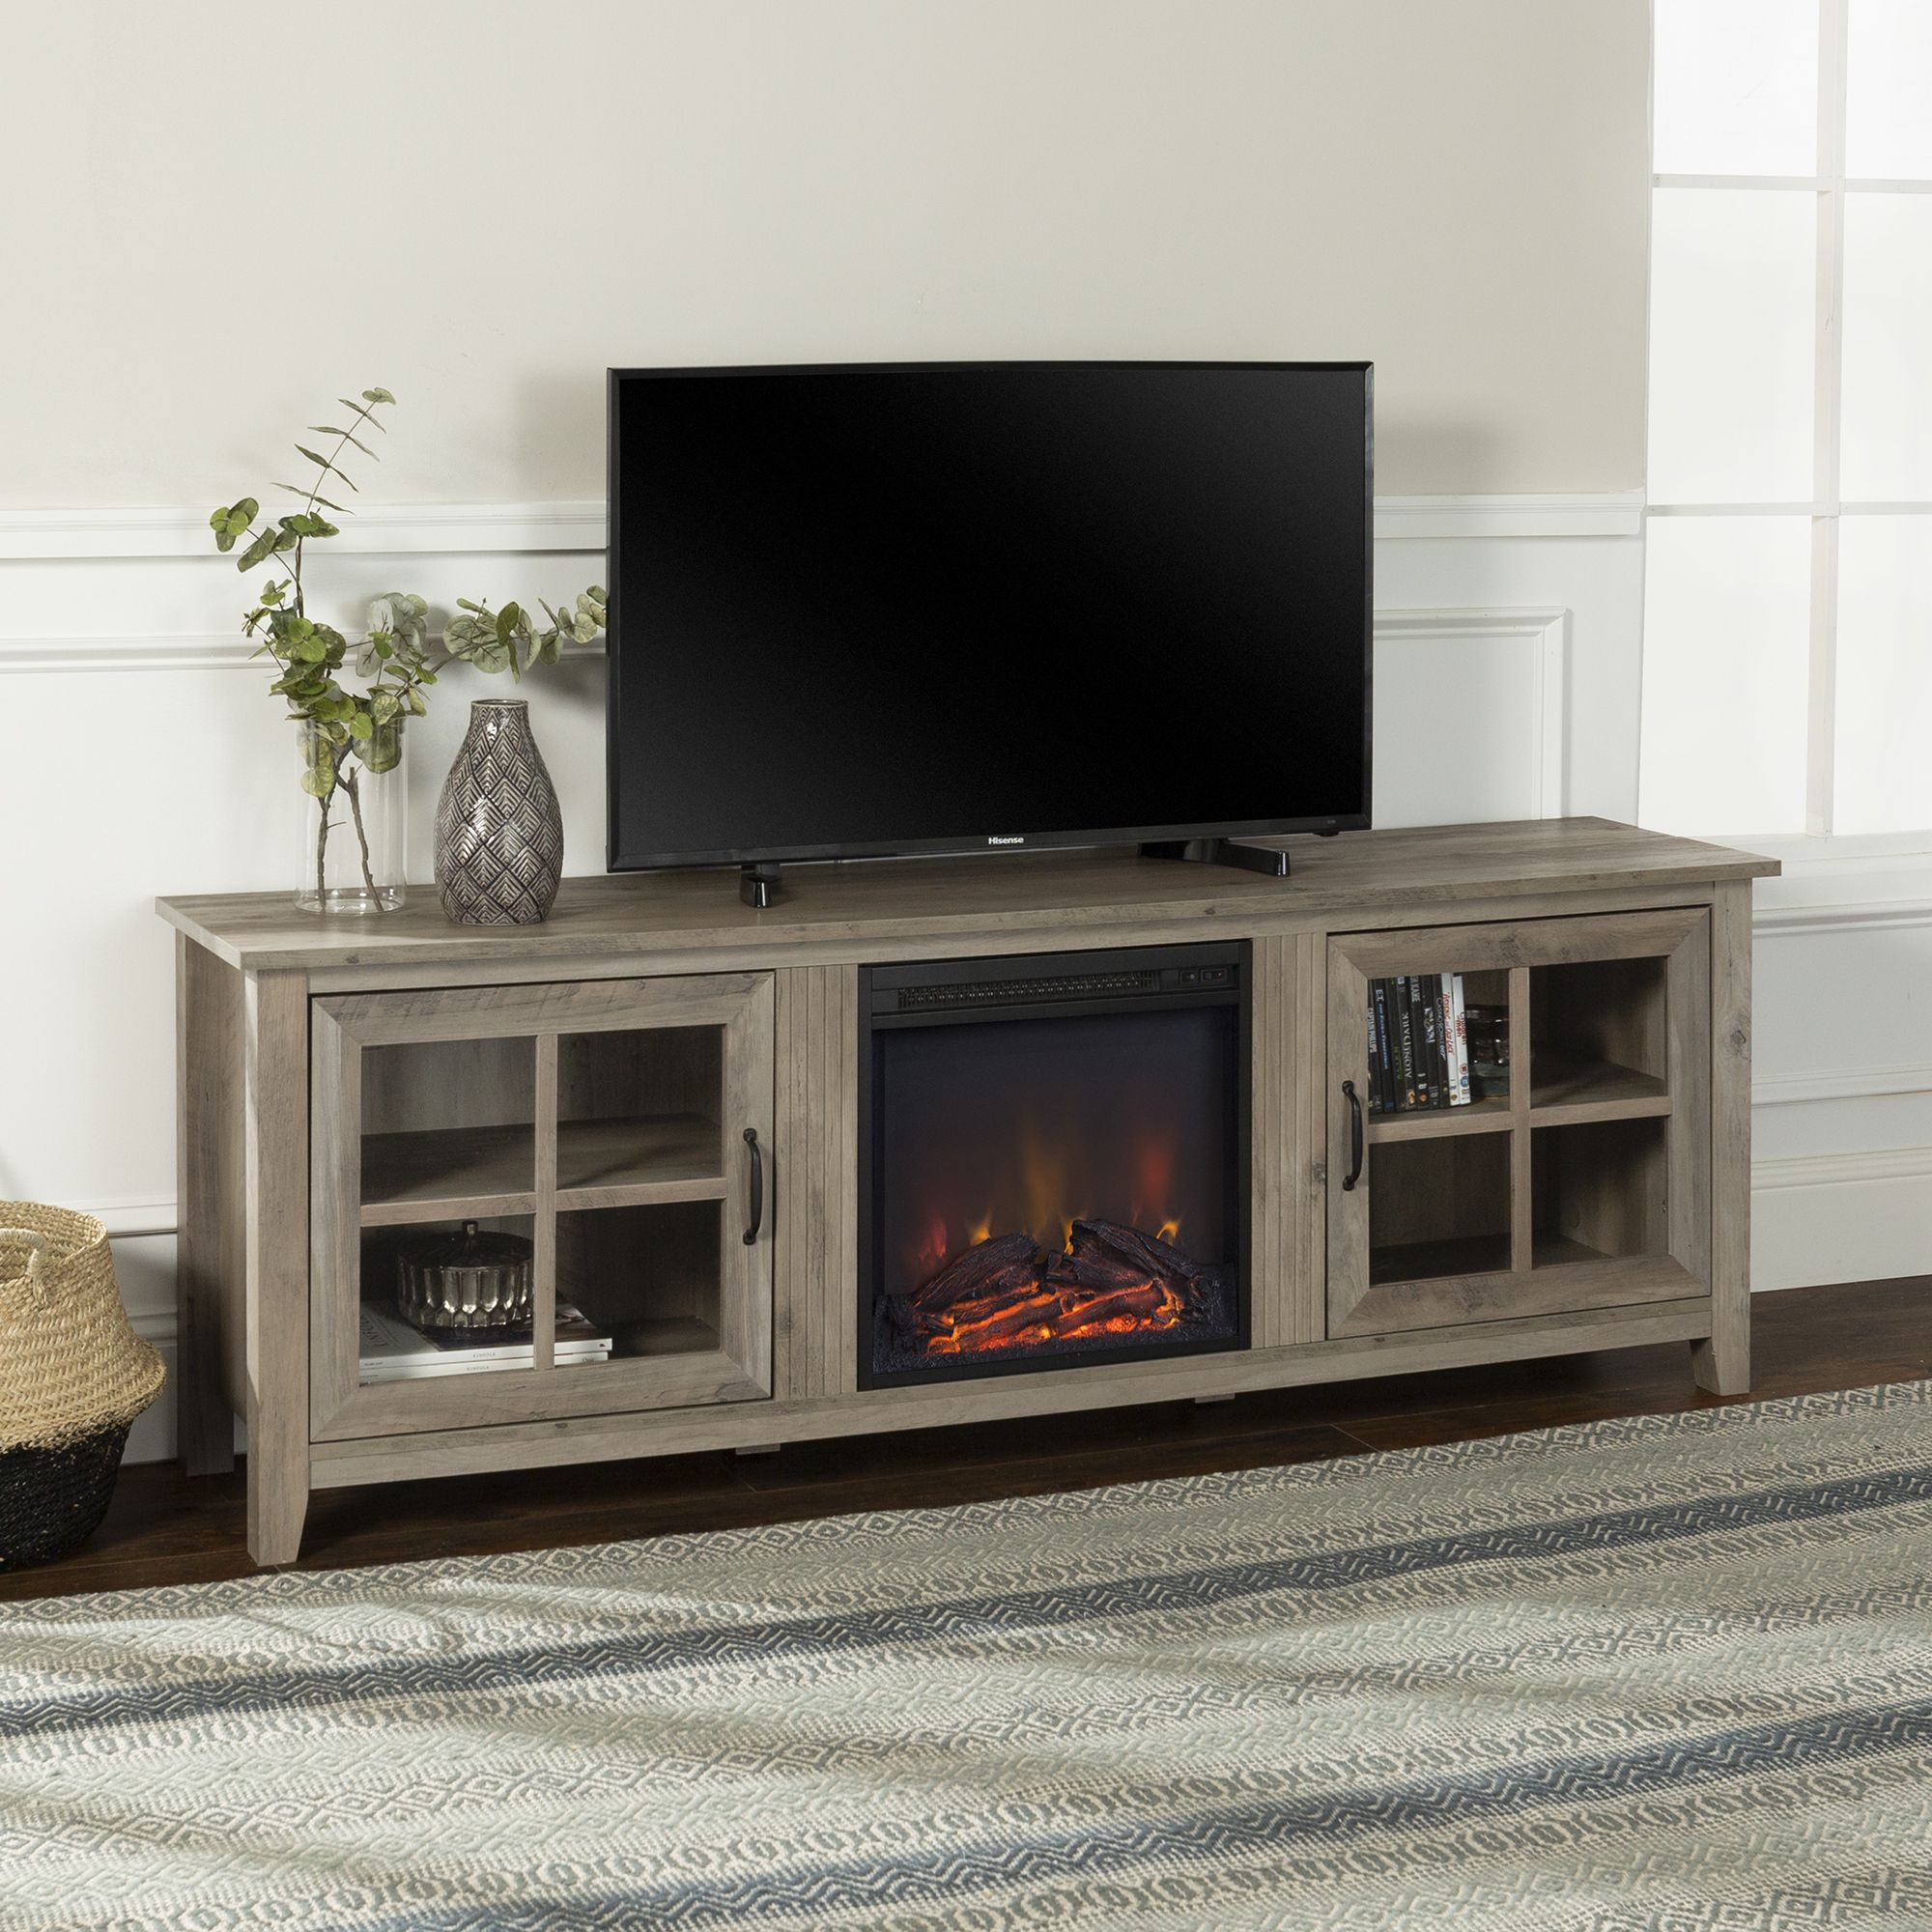 Home Fireplace Tv Stand Tv Stand With Glass Doors Farmhouse Fireplace